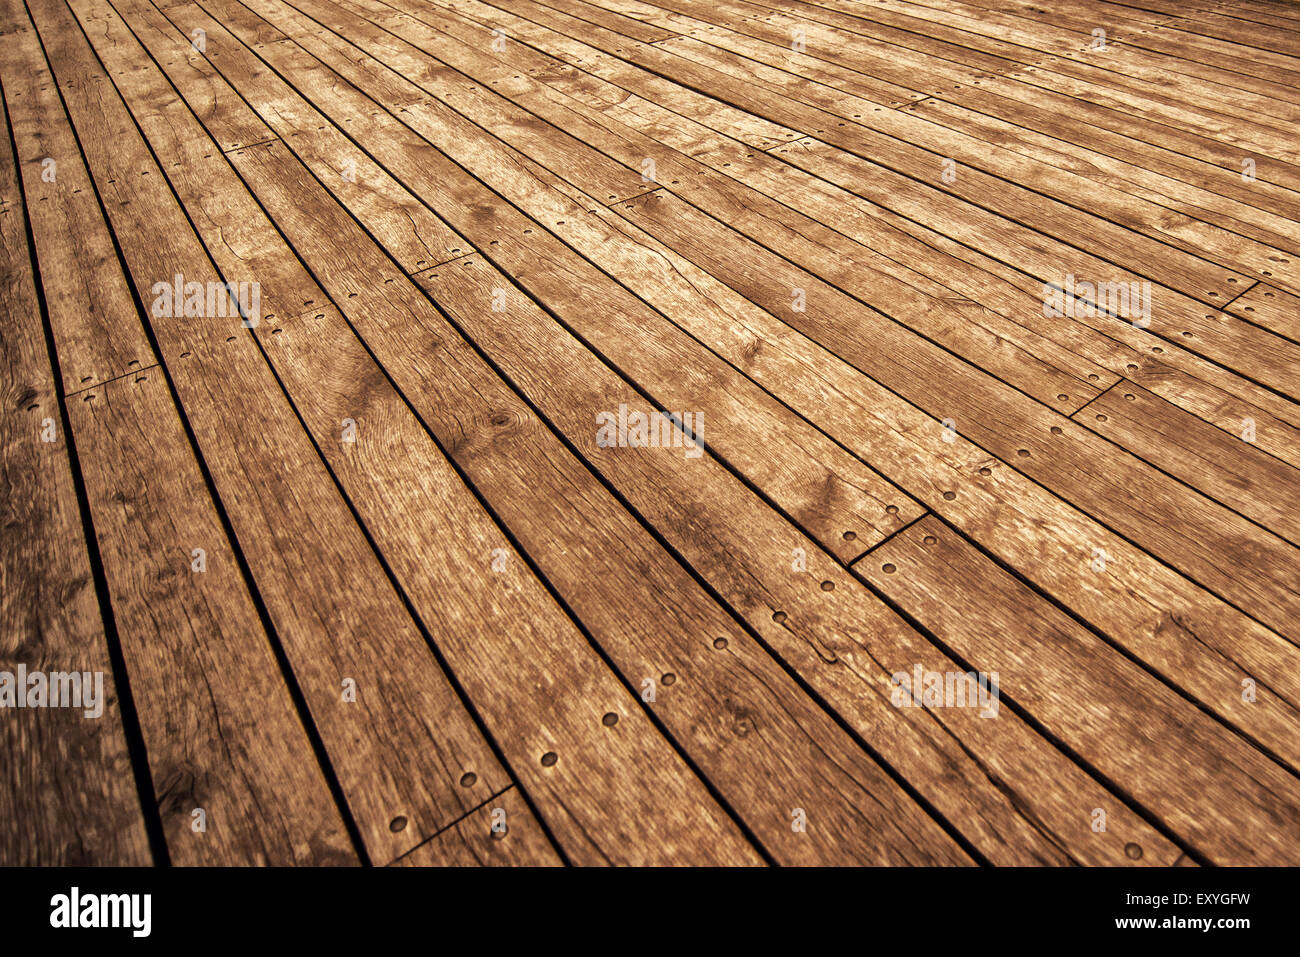 Rustic Wooden Floor Board Texture in Perspective as Background for Product Placement, Warm Tone - Stock Image